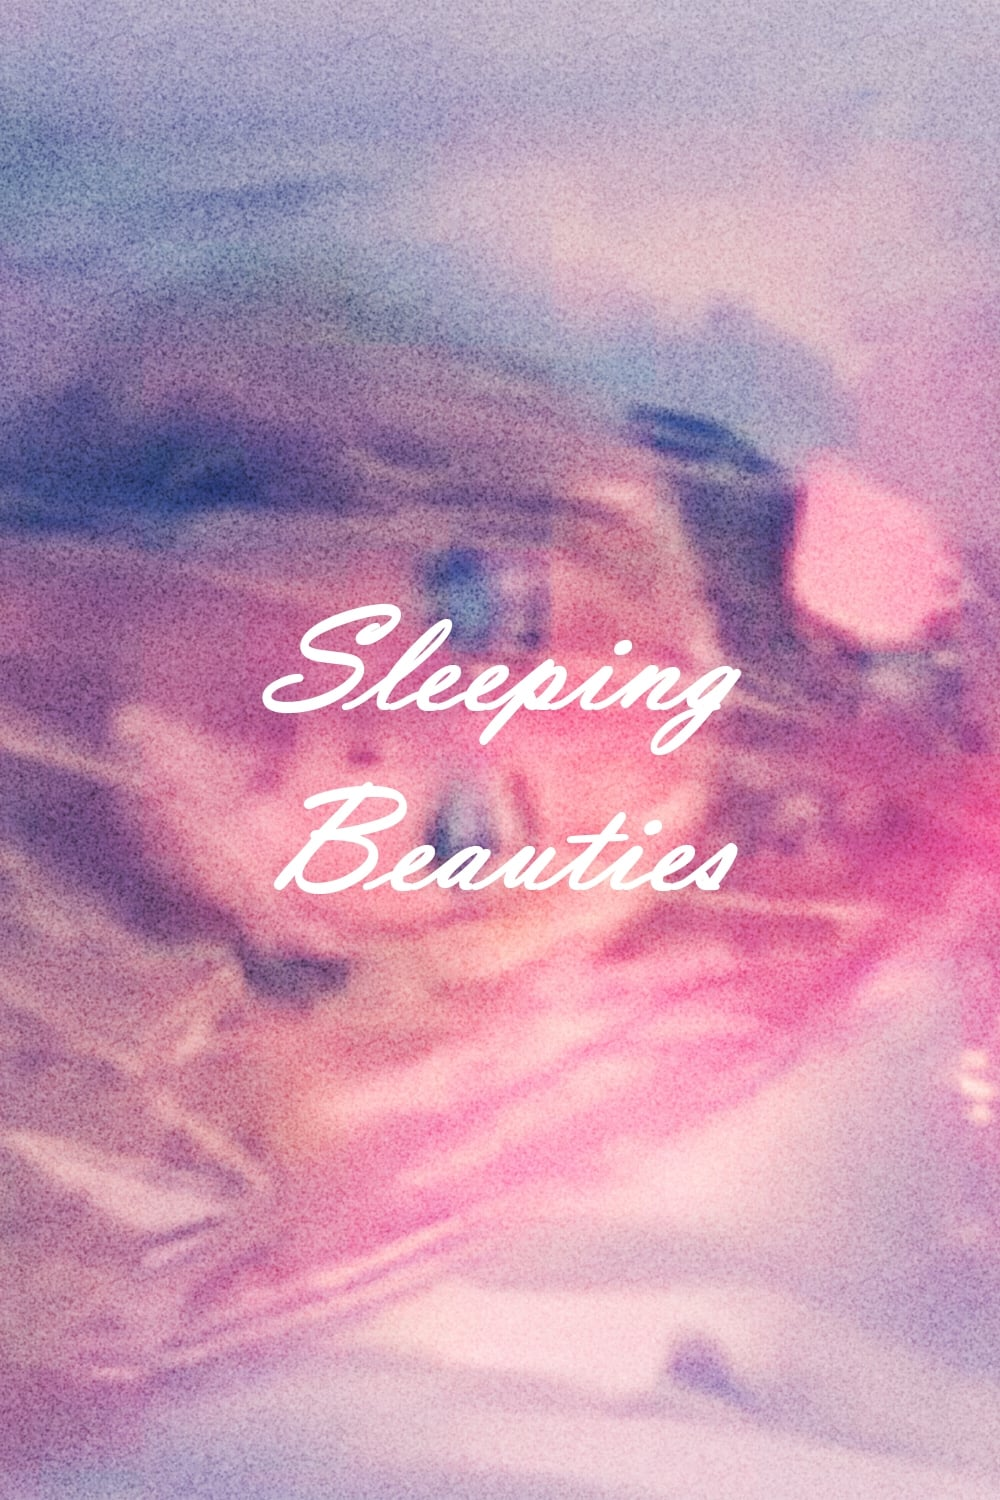 Sleeping Beauties (1999)